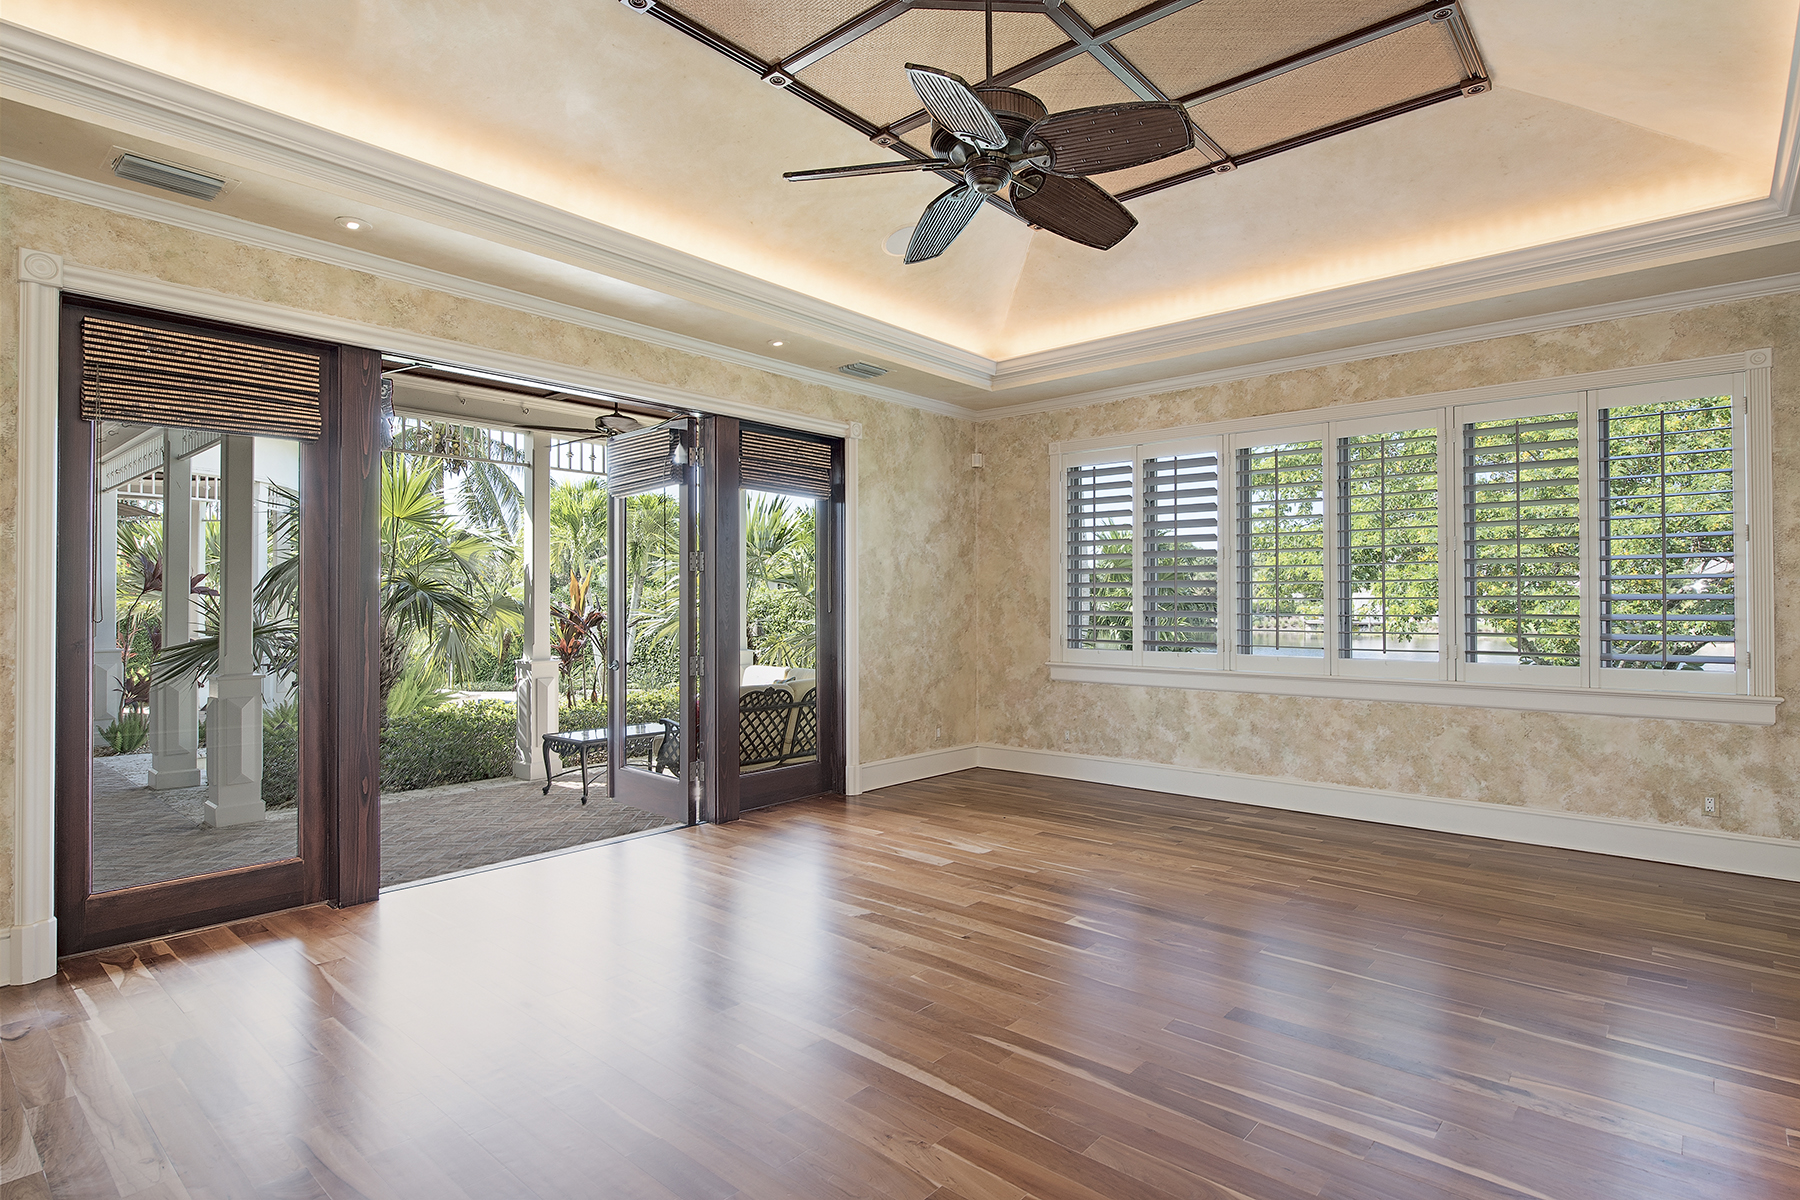 Additional photo for property listing at OLDE NAPLES 575  3rd St  N,  Naples, Florida 34102 United States